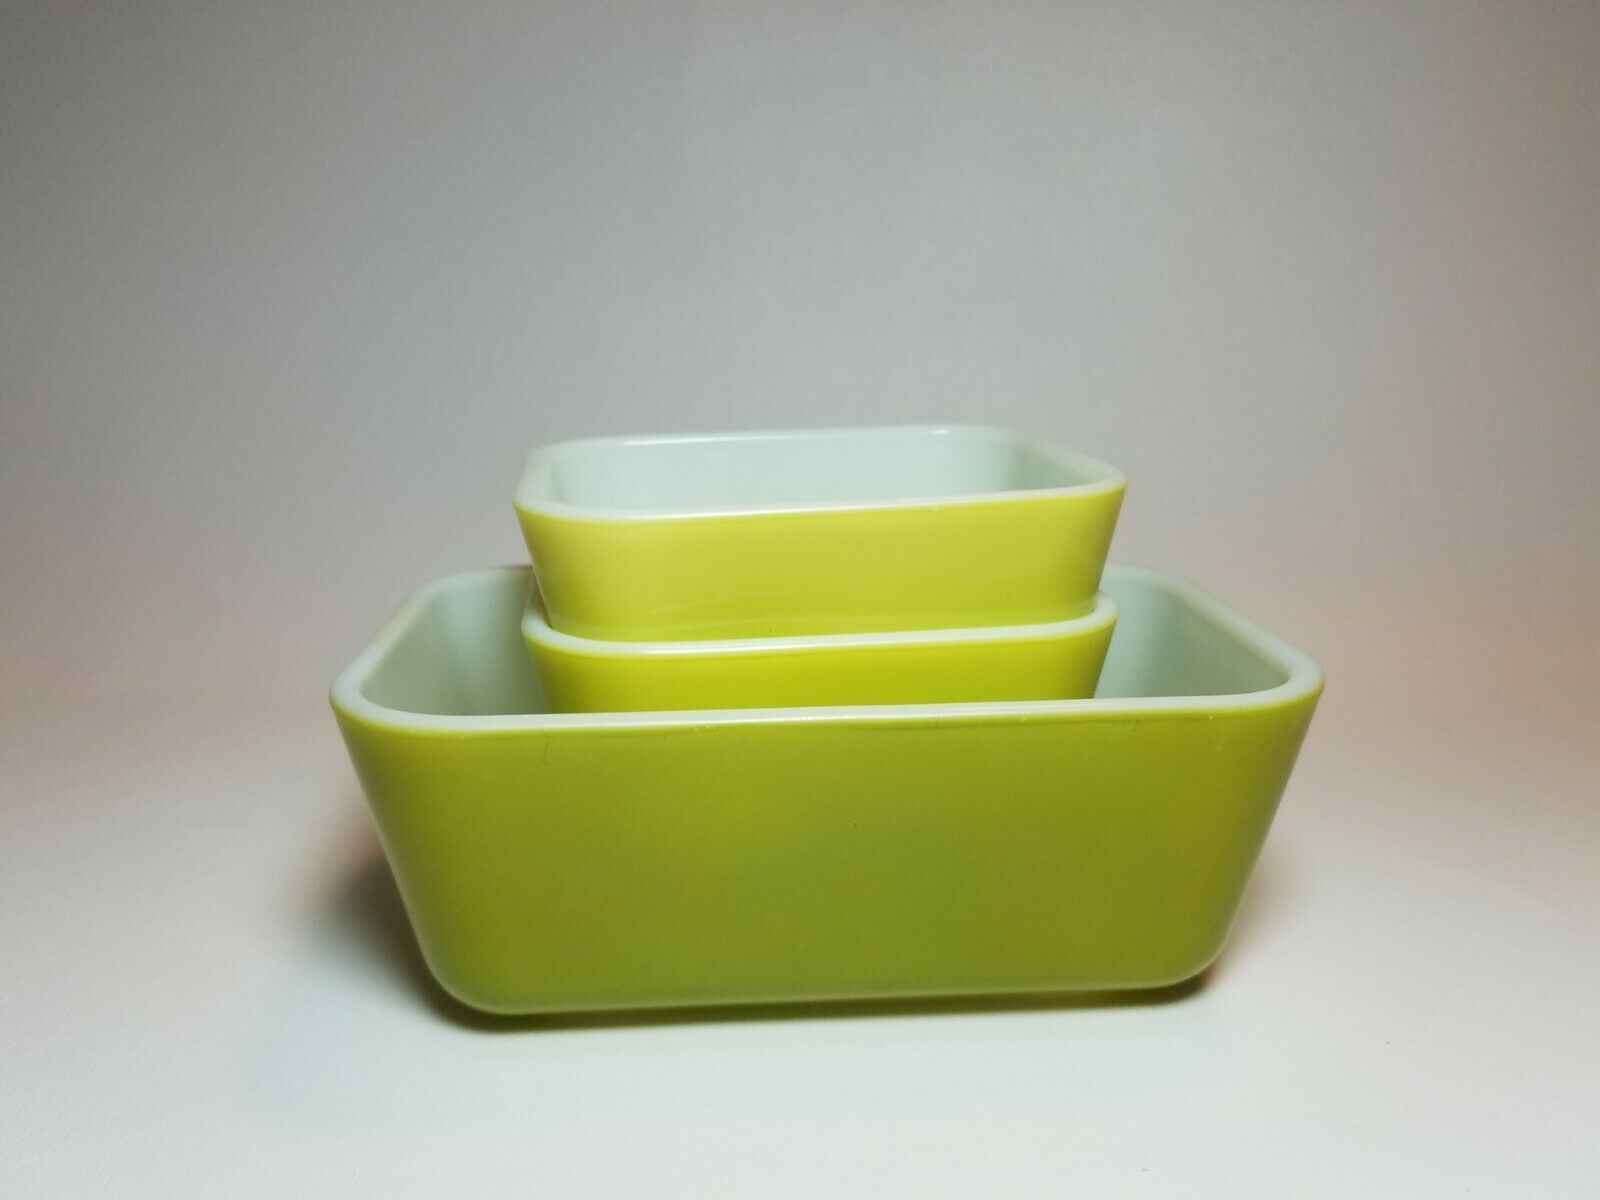 Vintage Pyrex Verde Green and Yellow 501 & 502 Refrigerator Dishes No Lids image 9